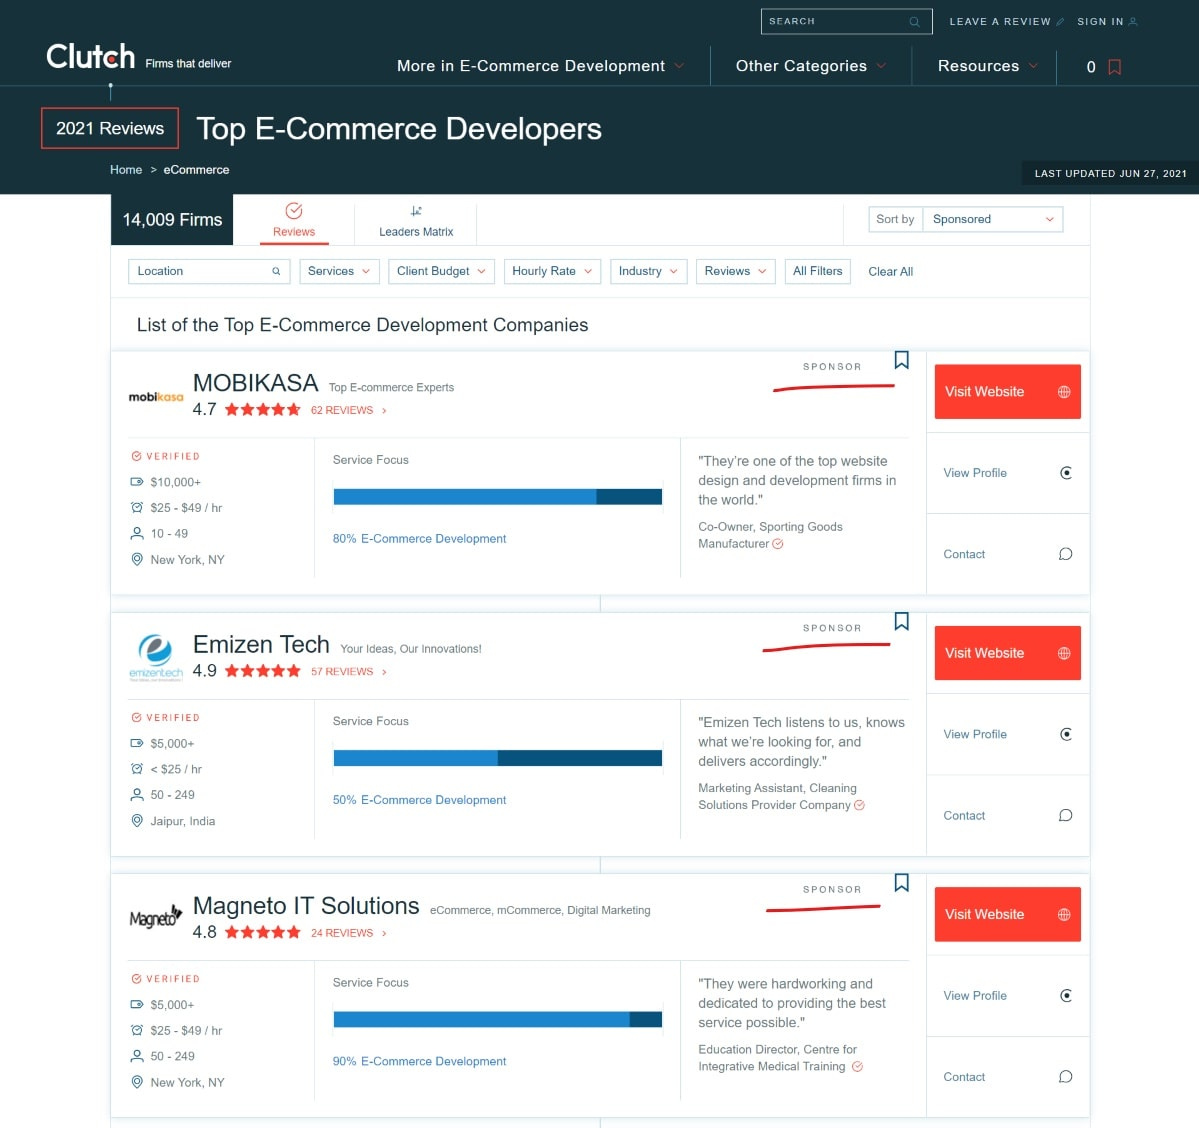 Sponsored profiles of top ecommerce developers on Clutch